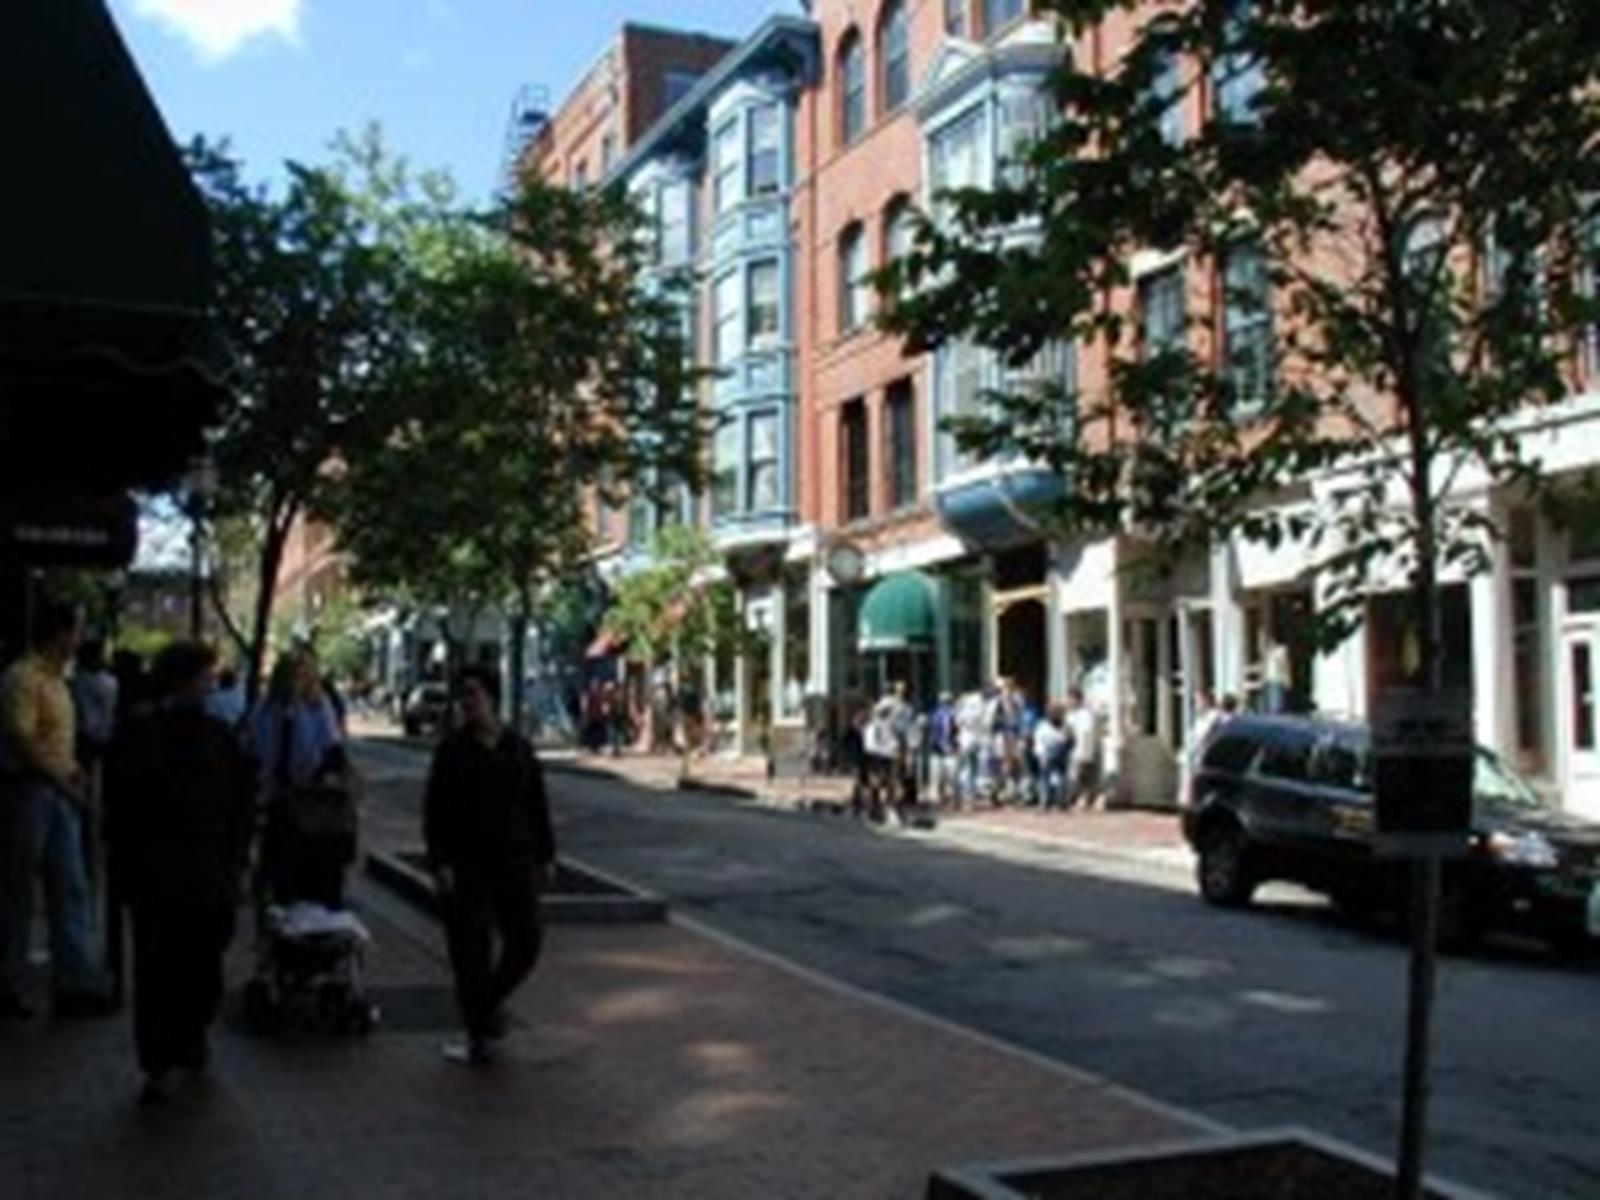 Exchange Street in Old Port